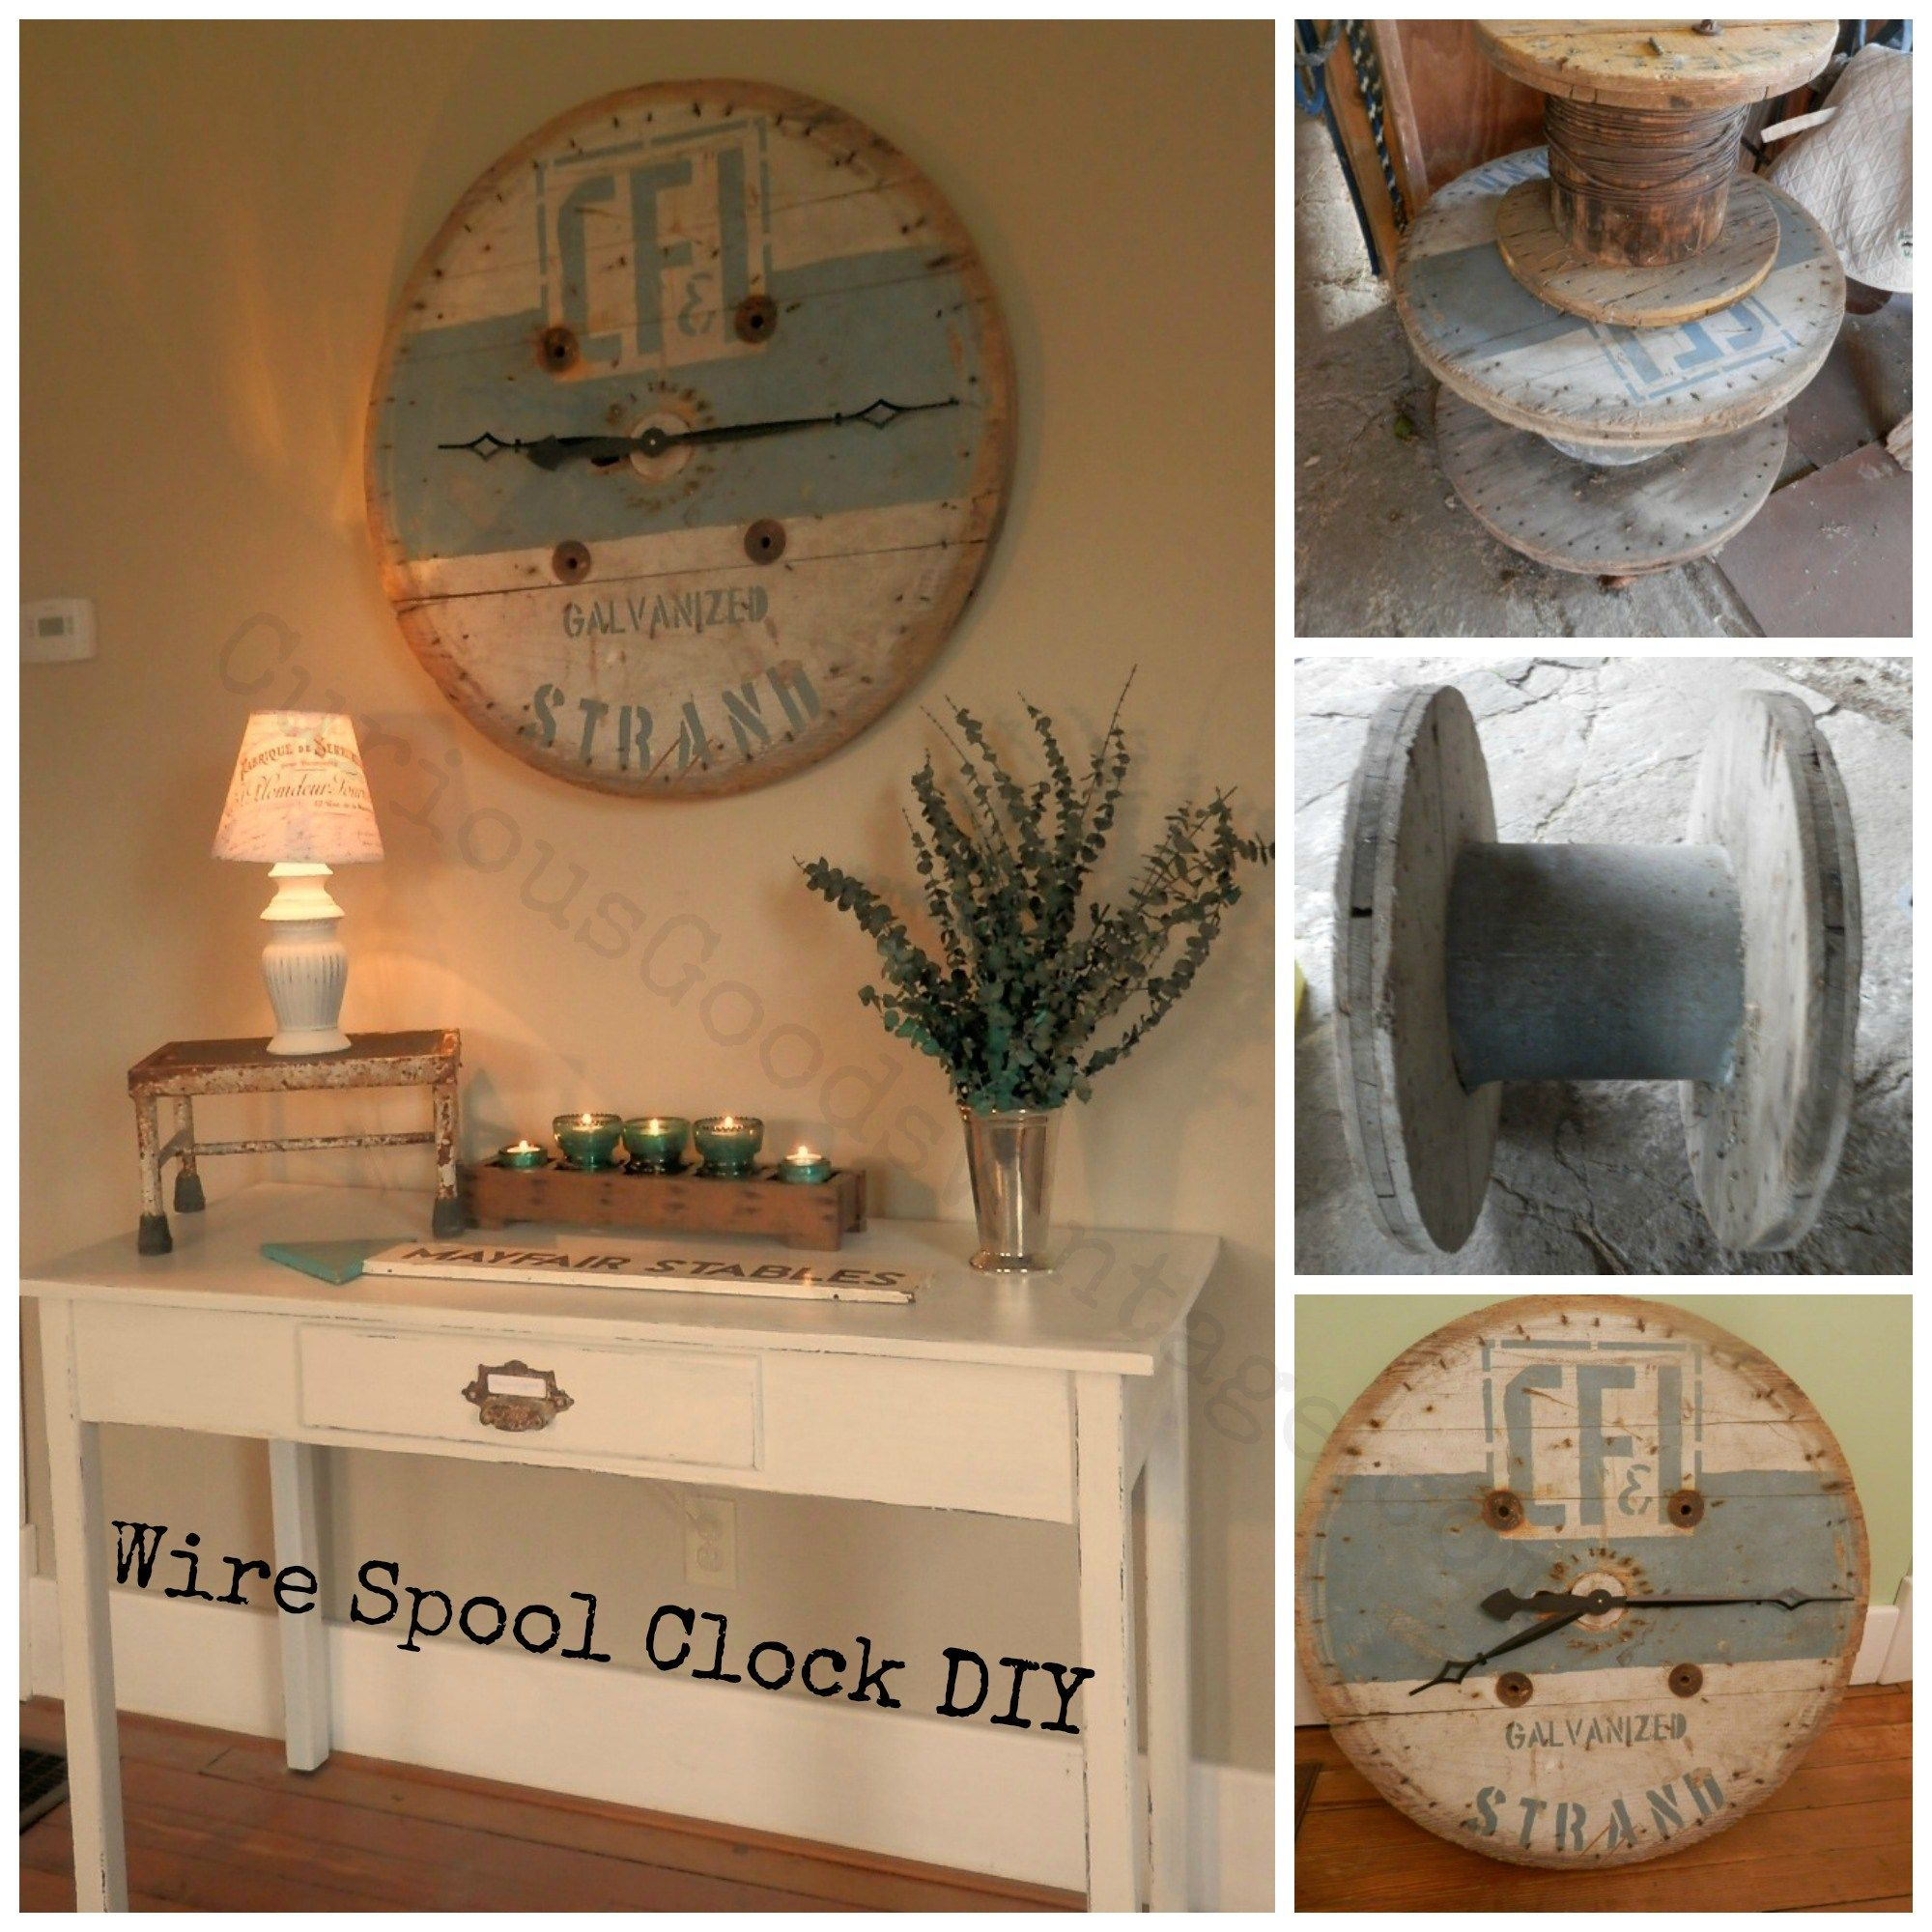 wire spool clock cable spool oversized vintage salvage how-to DIY